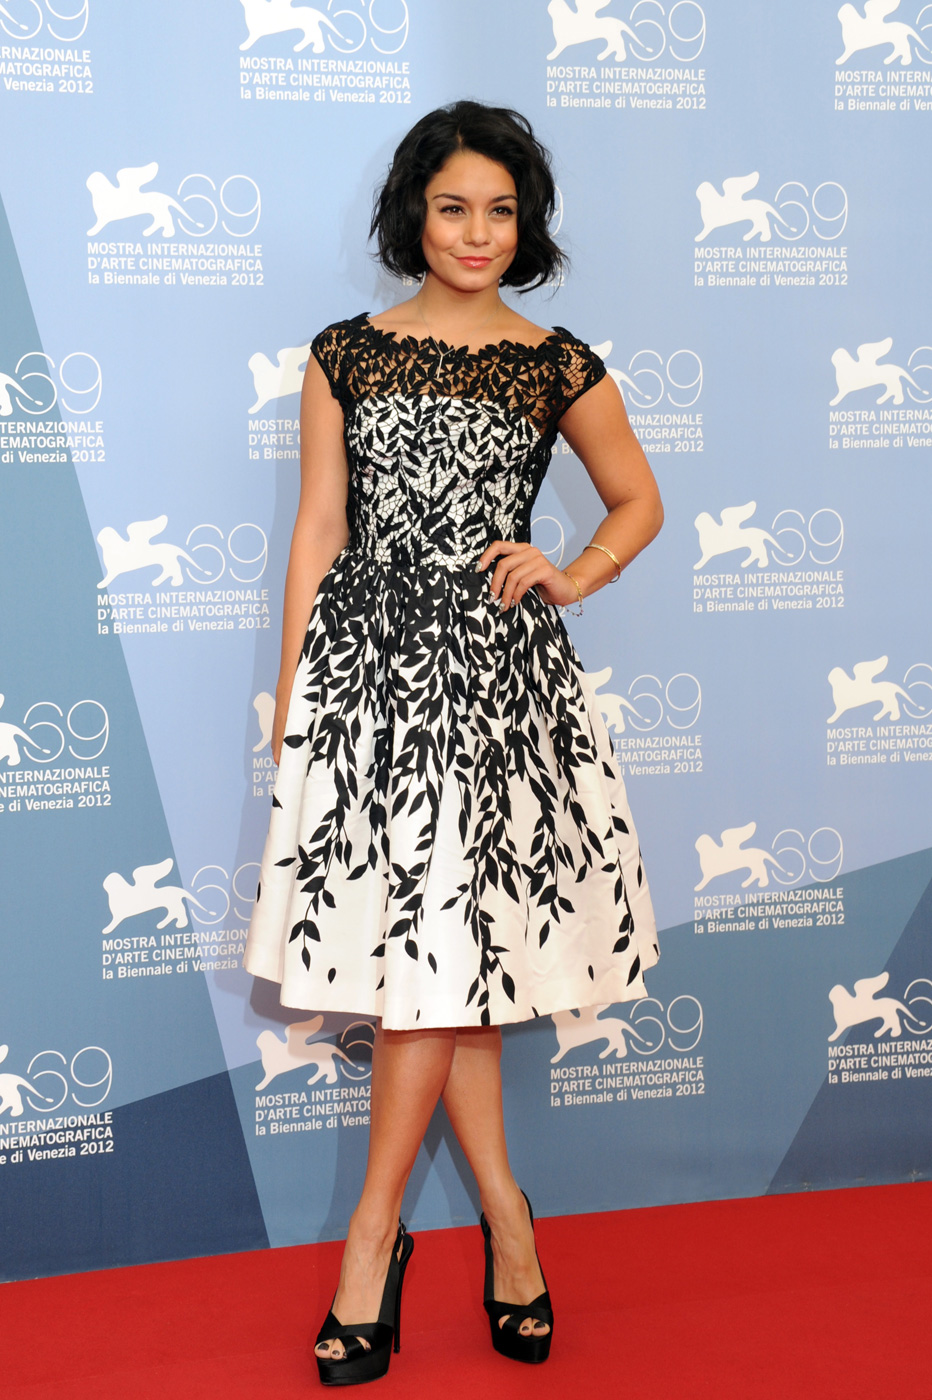 VANESSA HUDGENS IN BLUMARINE AT VENICE FILM FESTIVAL